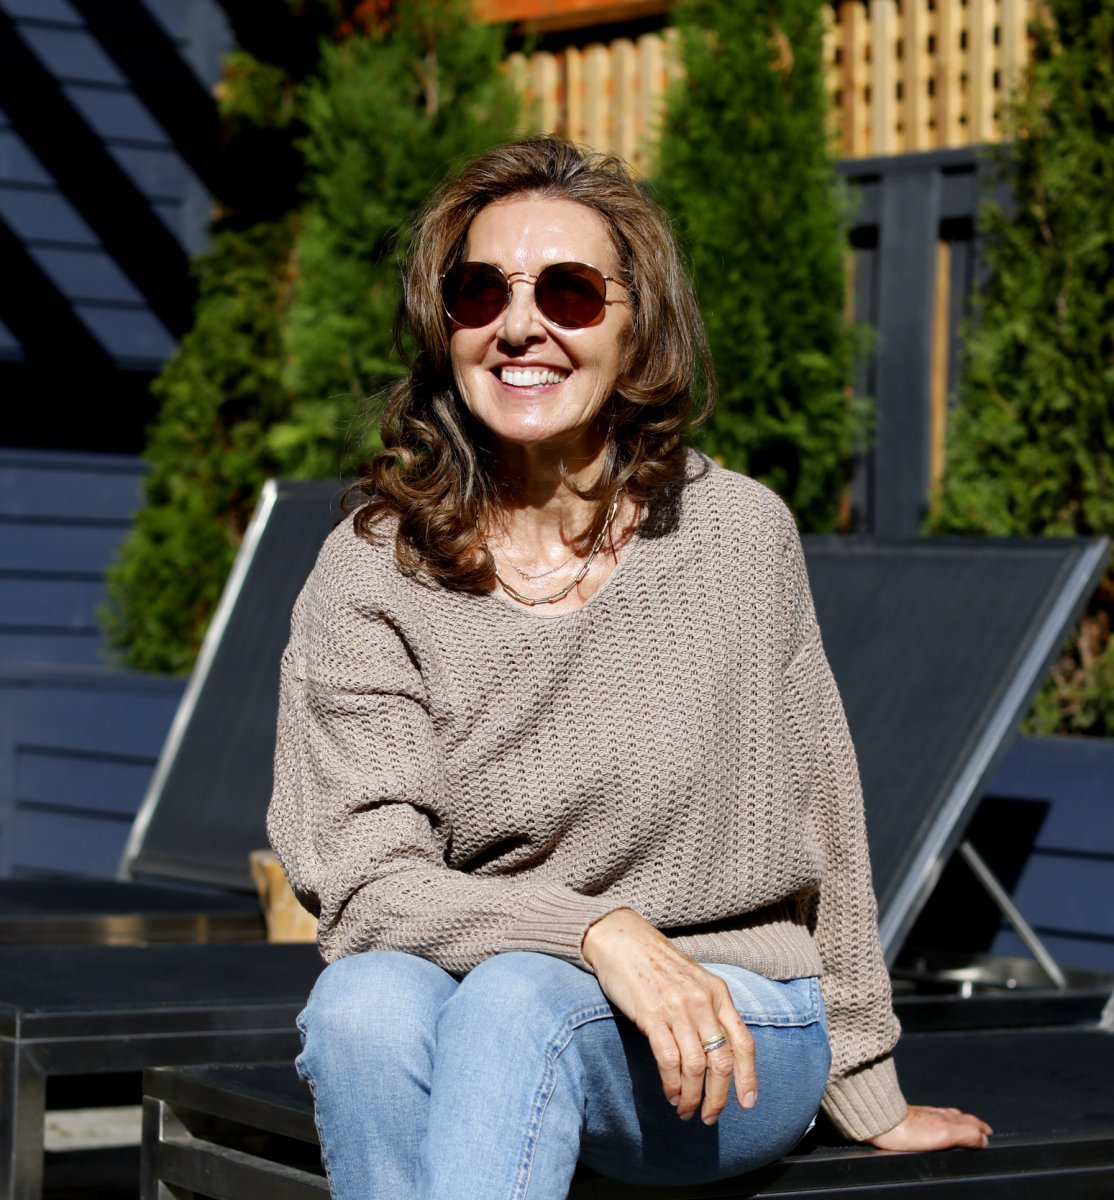 Pivot Skincare founder Cindy Berg sits on a lawn chair and smiles in the sun.